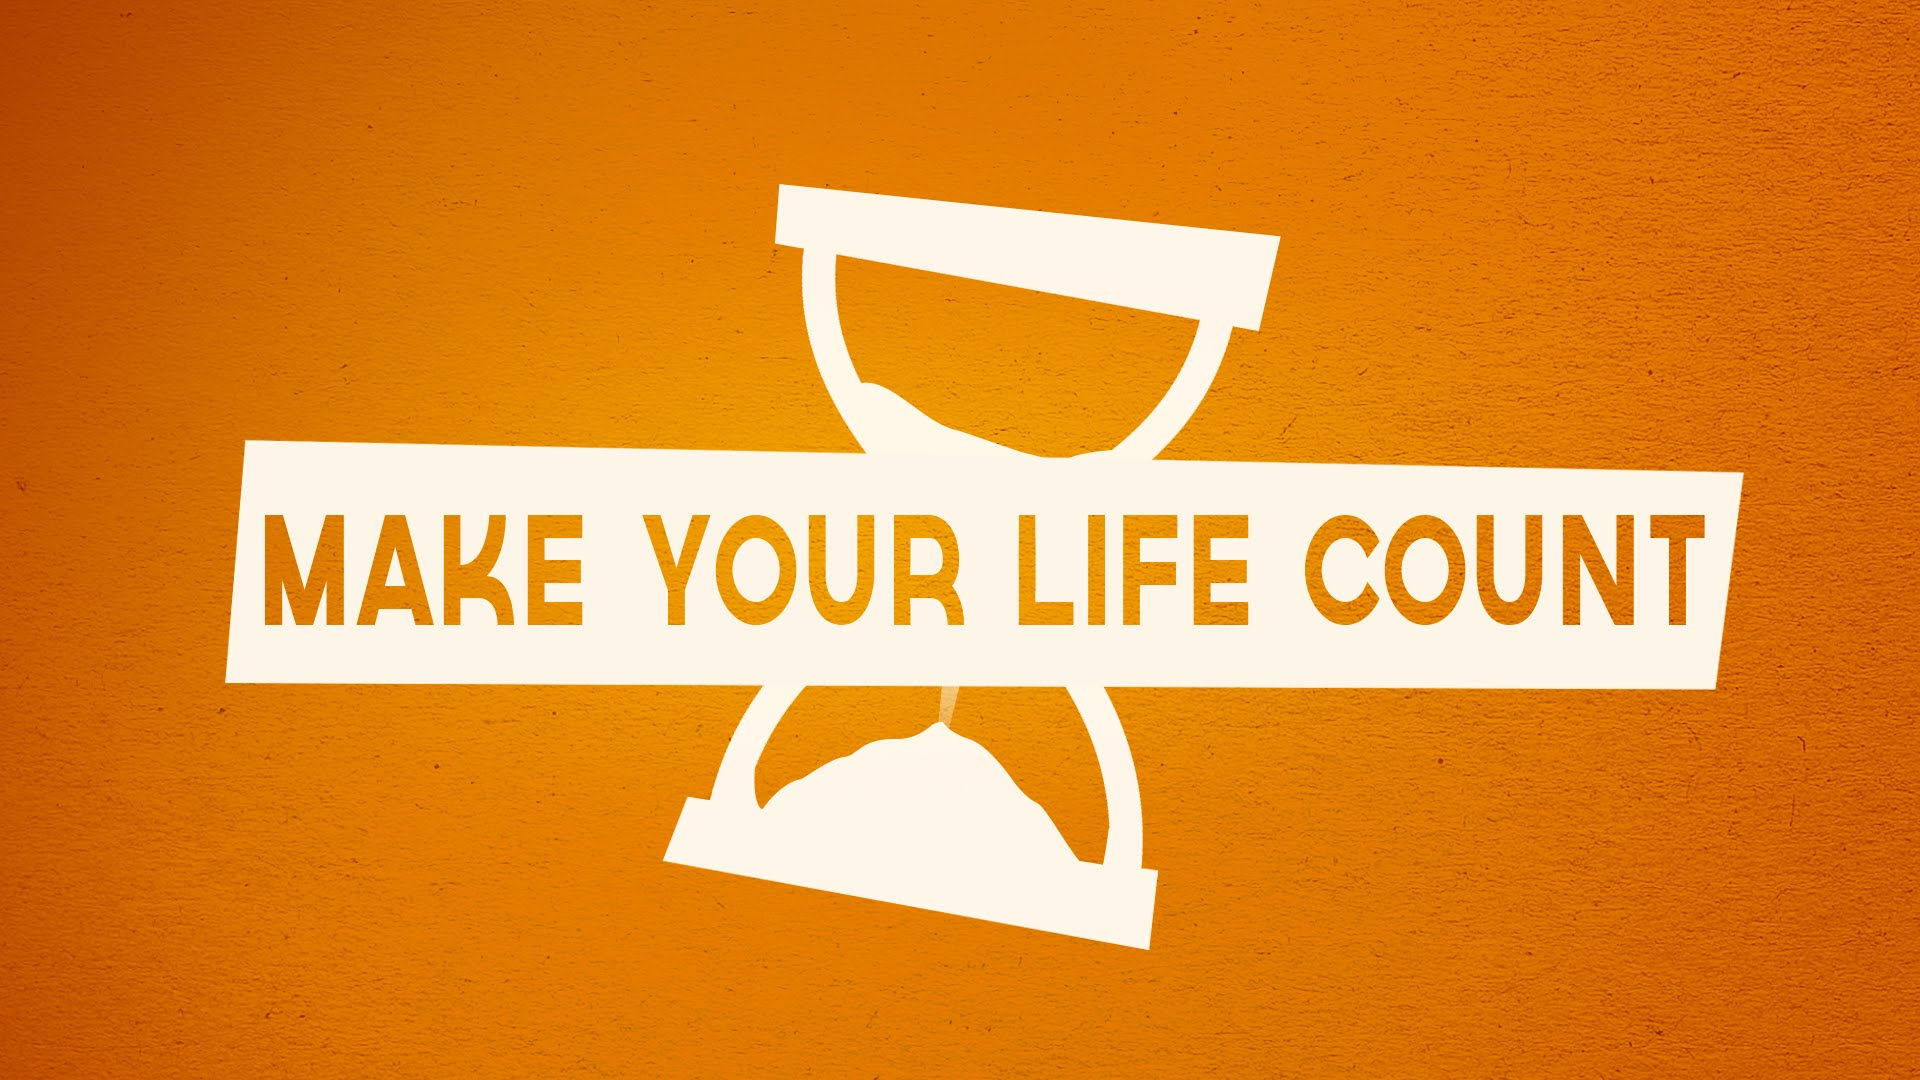 Making Your Life Count (Jan 2011)